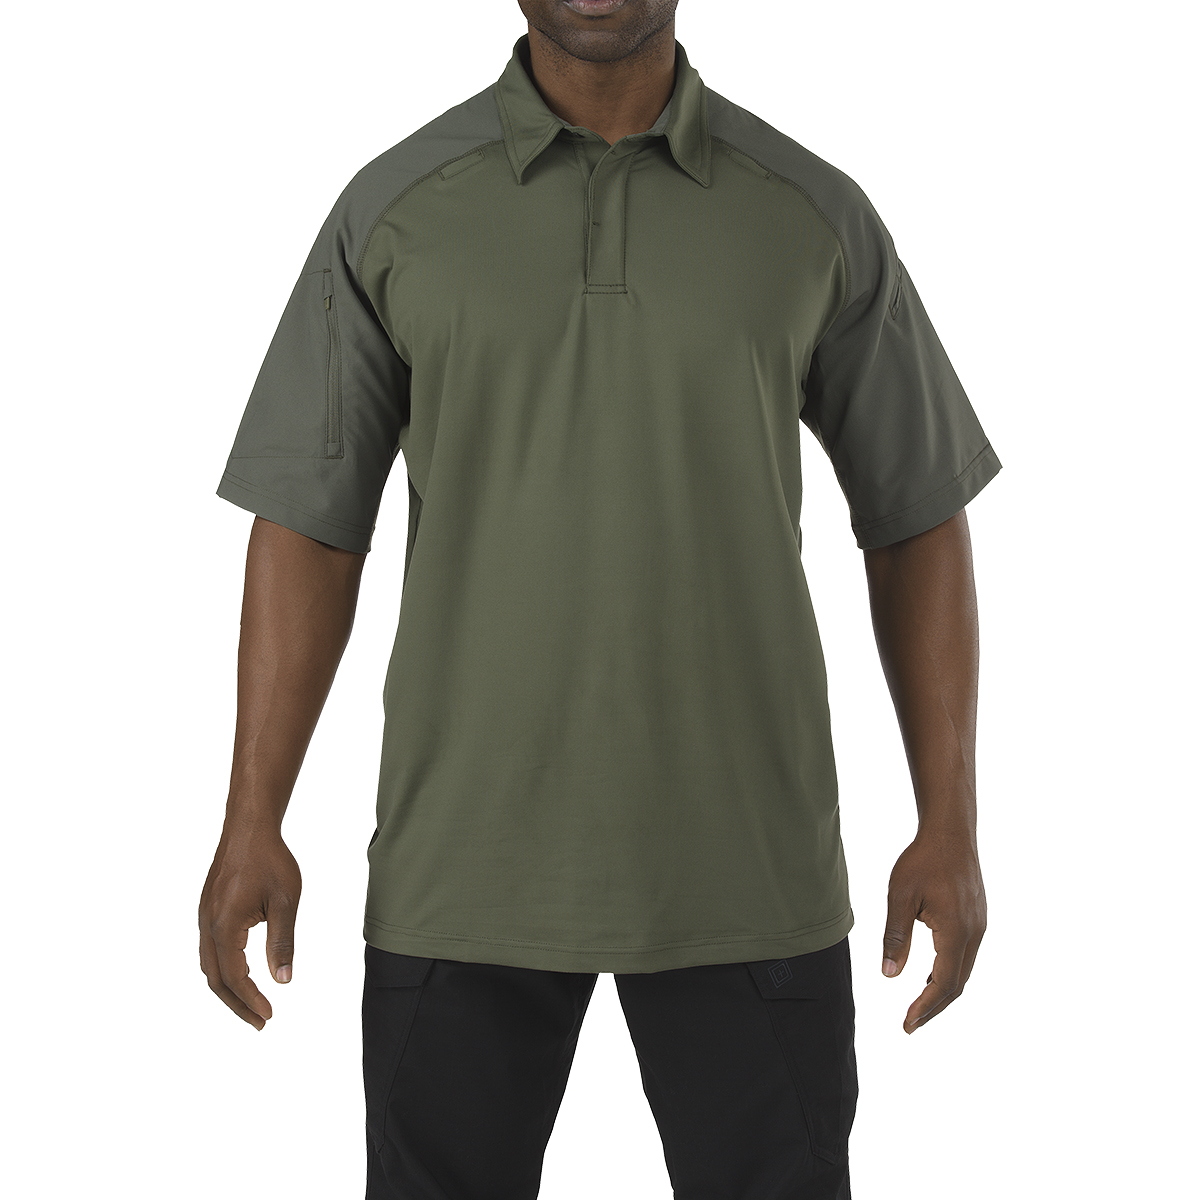 rapid performance polo short sleeve tdu green military 1st. Black Bedroom Furniture Sets. Home Design Ideas